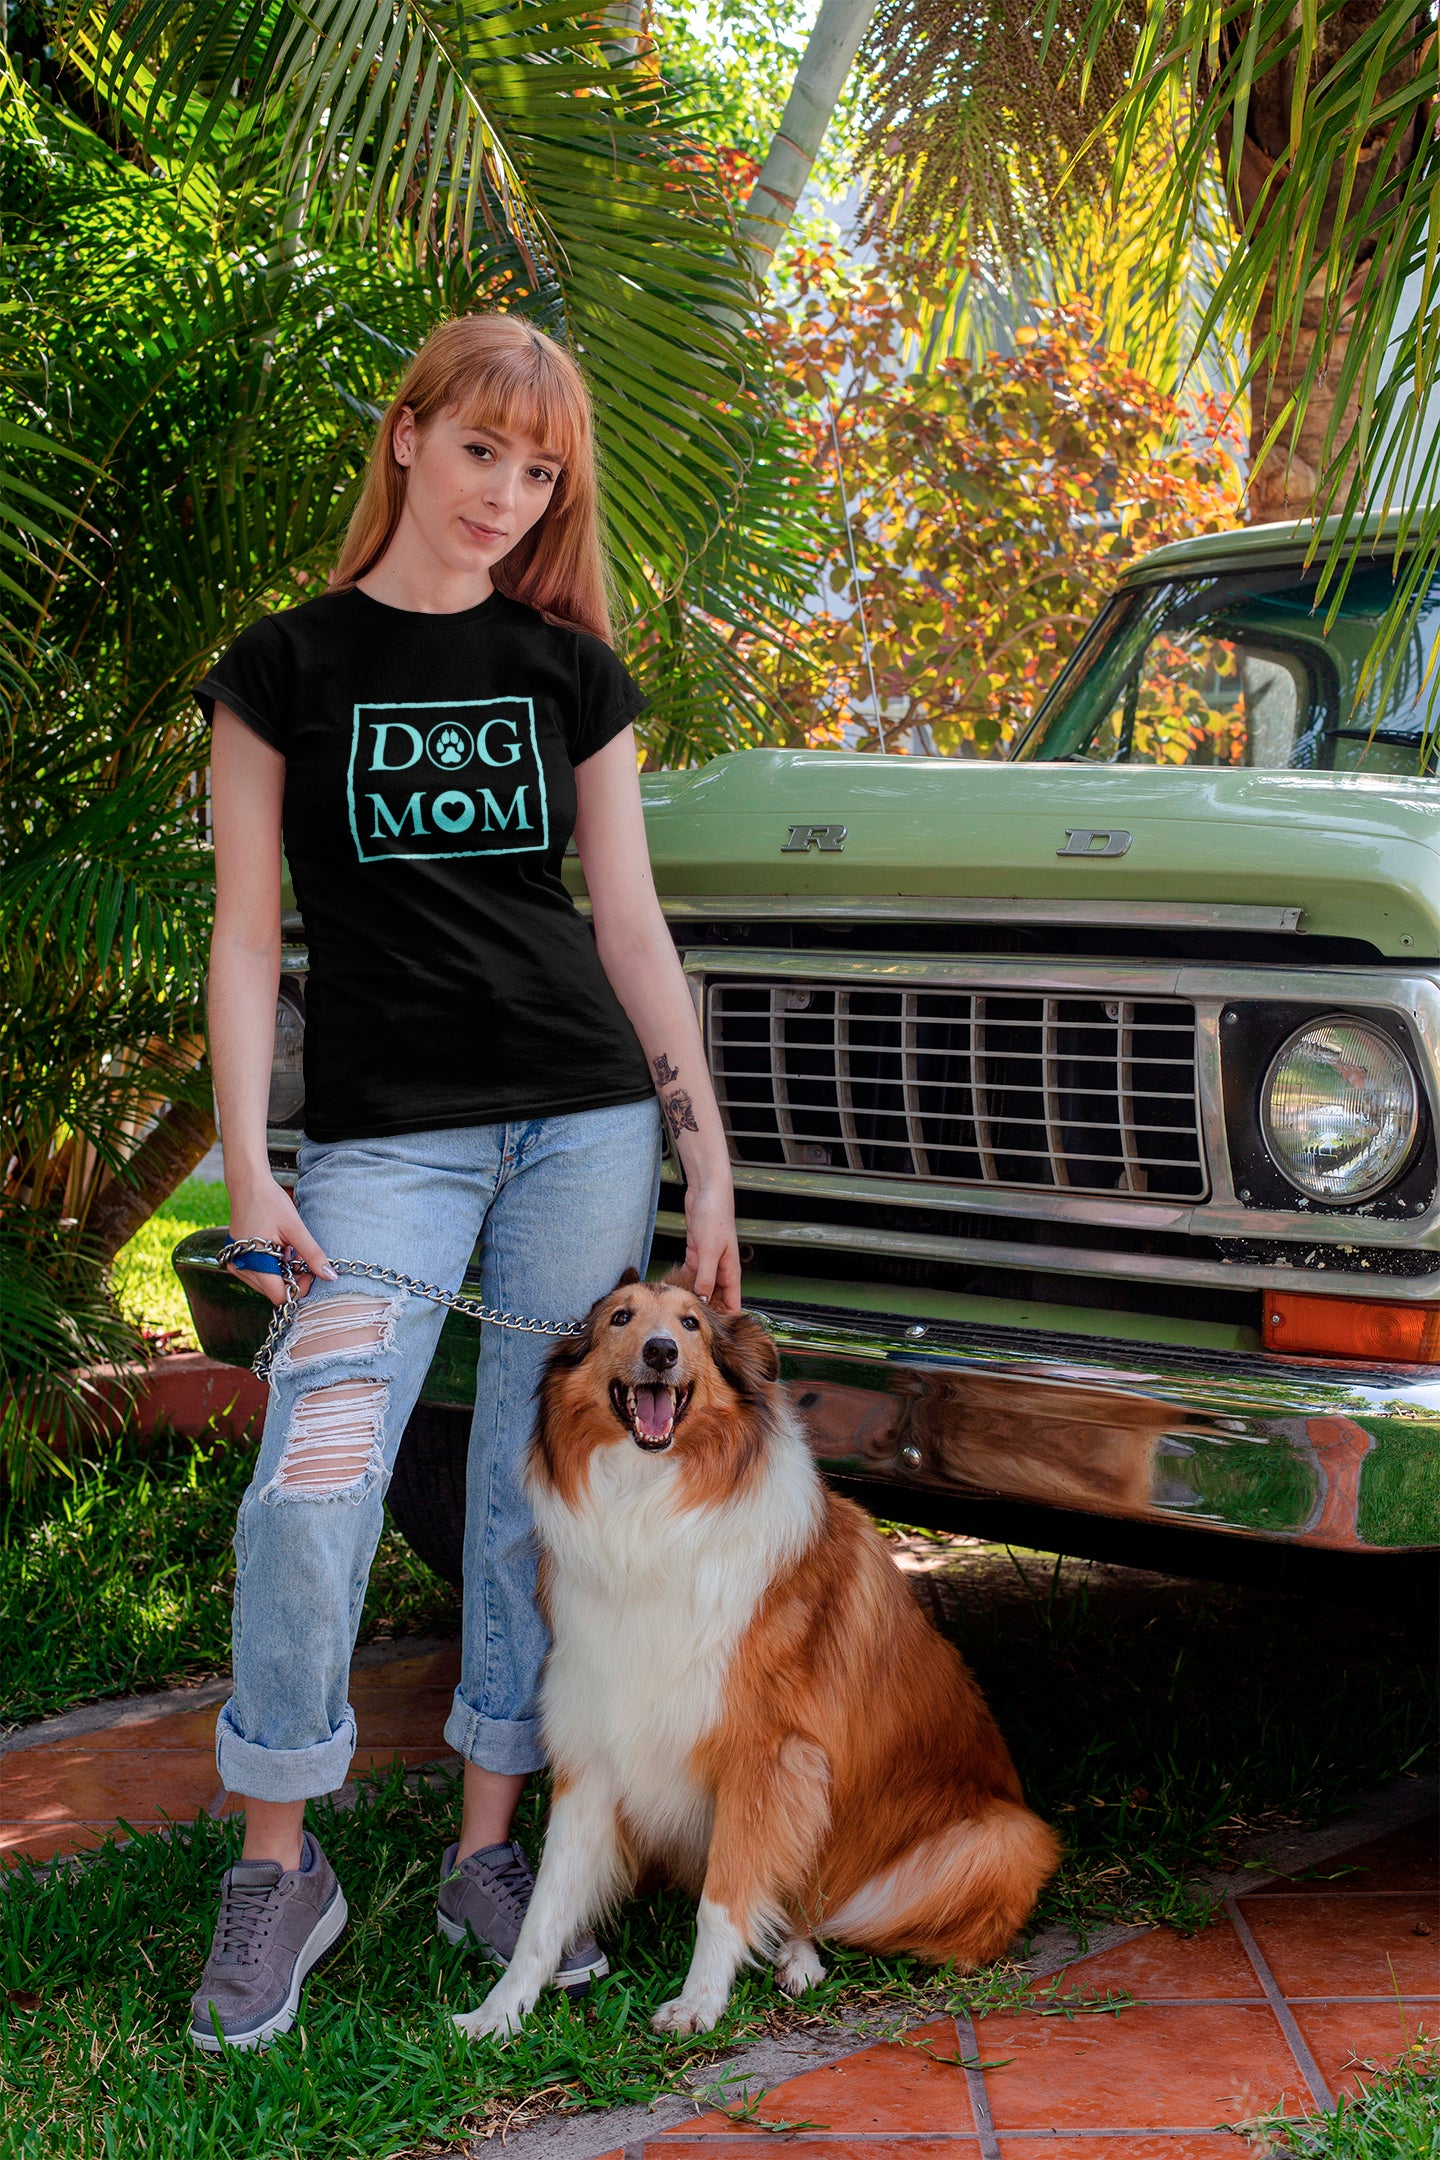 DOG MOM - Women's Black T-Shirt - Wear Pet